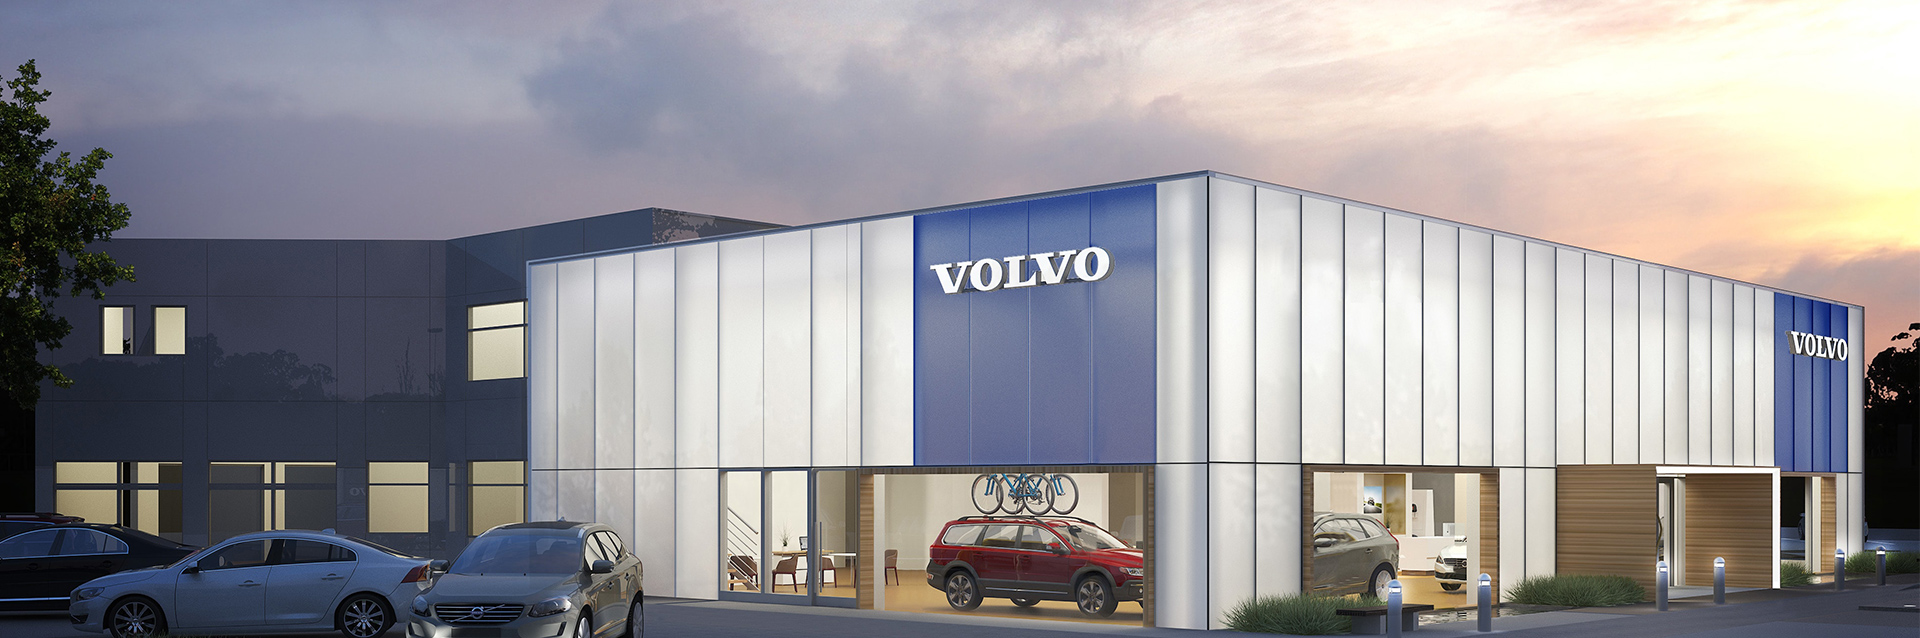 volvo-dealership-signage